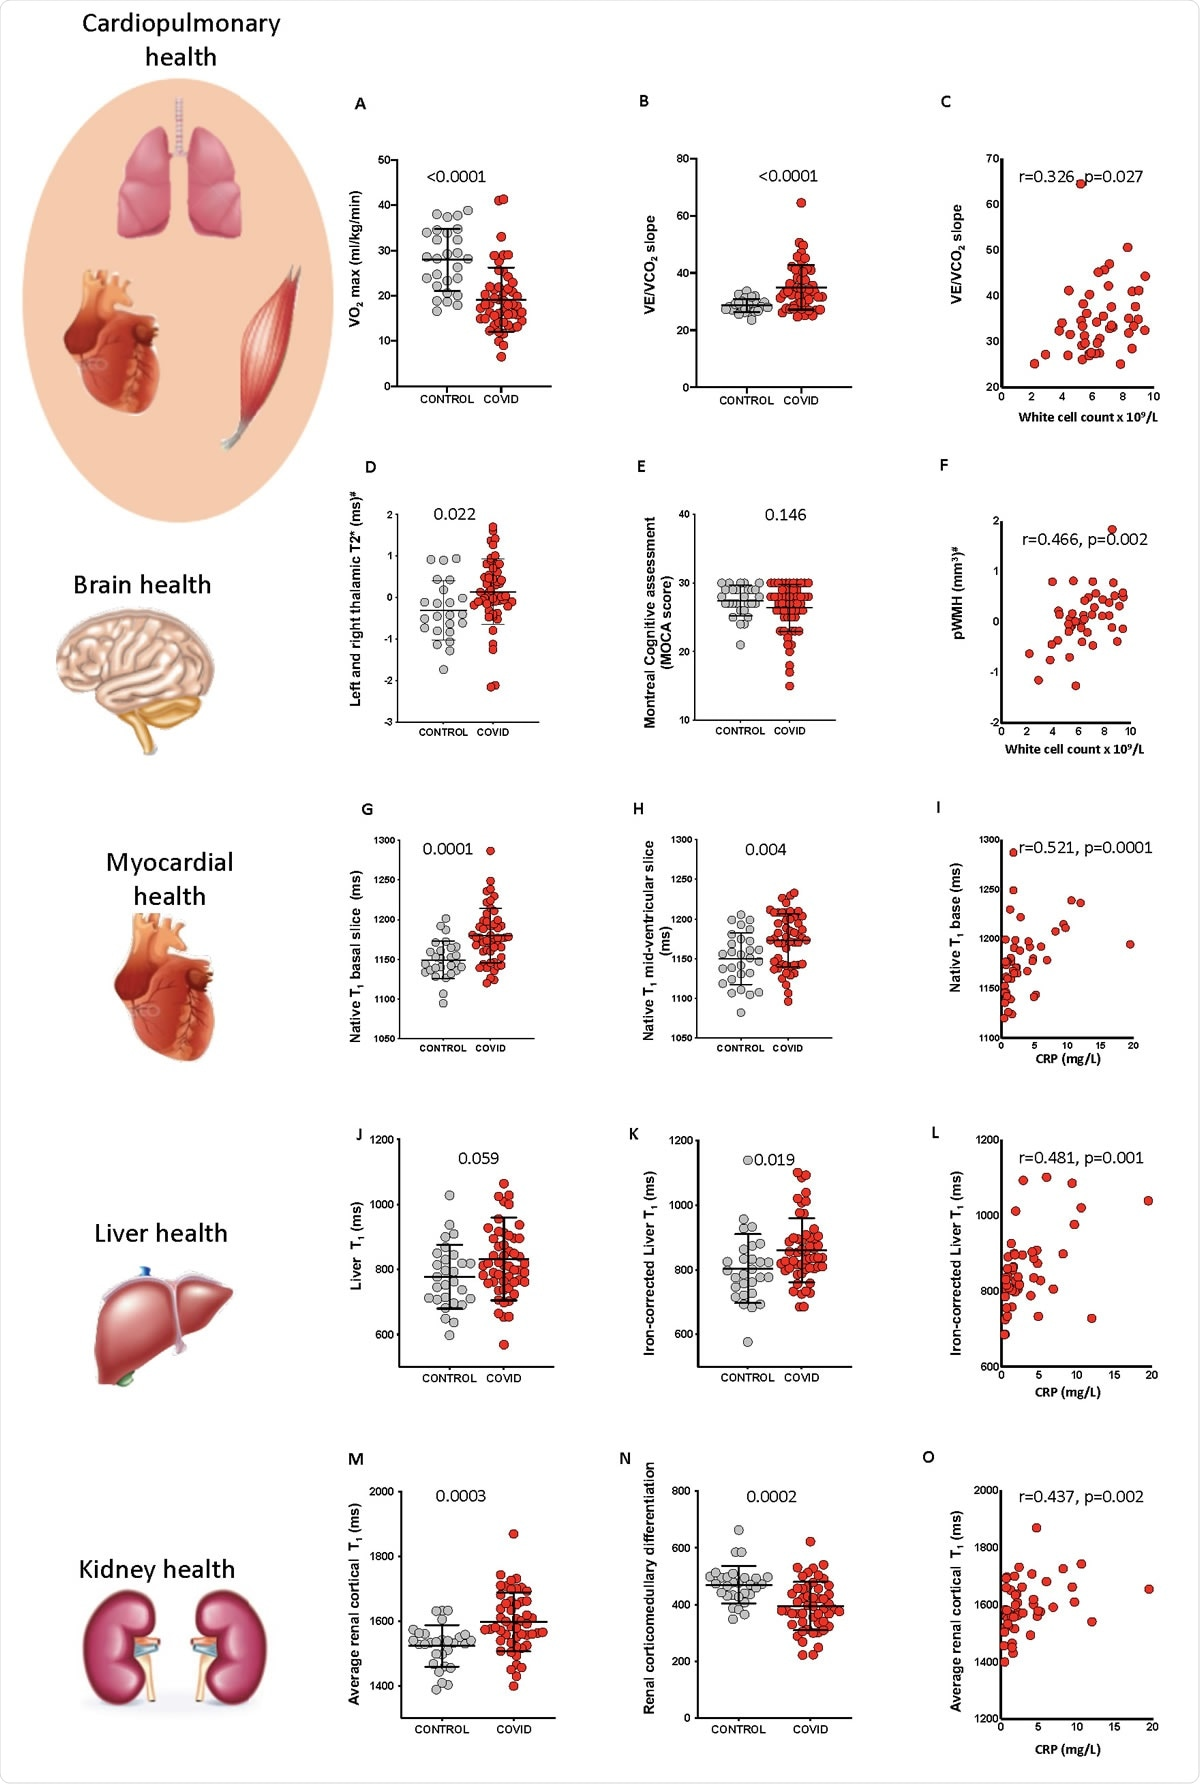 Systemic effects of COVID-19 and relationship with inflammatory response